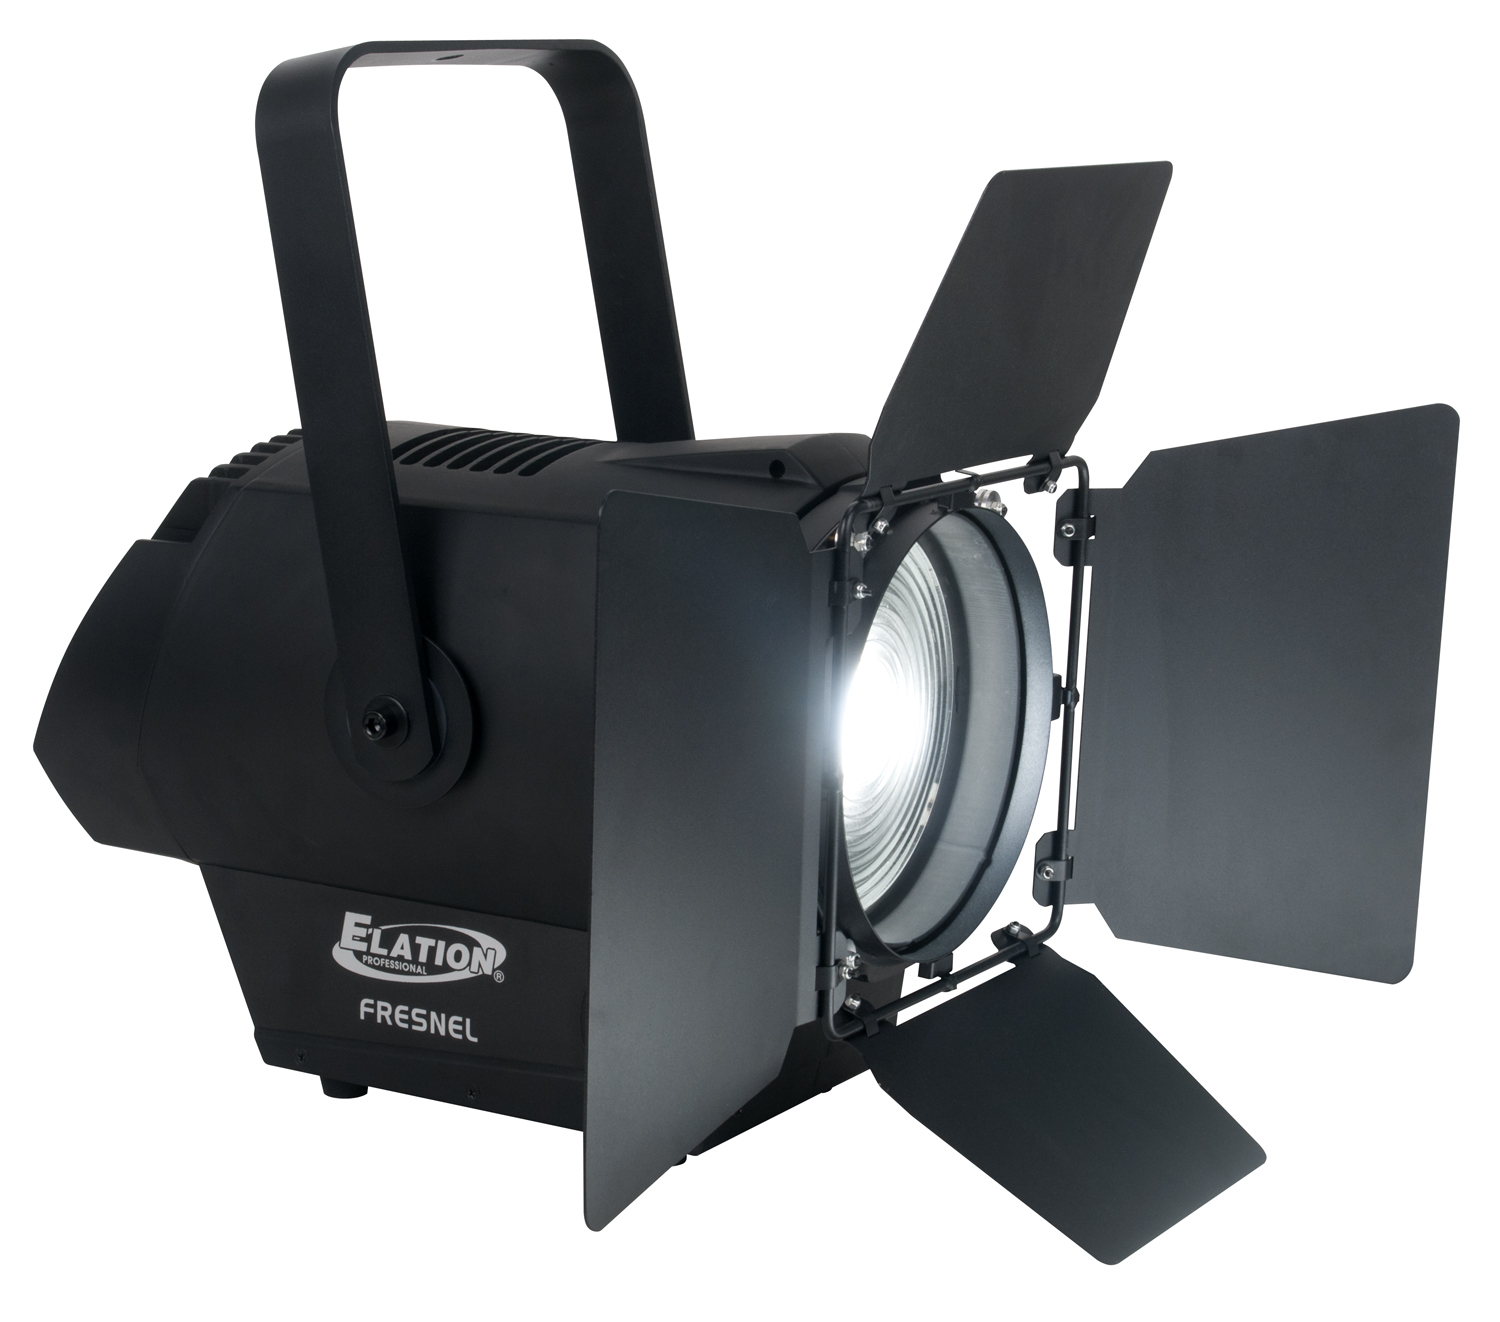 Elation DW FRESNEL 3 DMX Channel Flood Par Stage Lighting with 250W Dynamic White LED Engine White (DLE064)